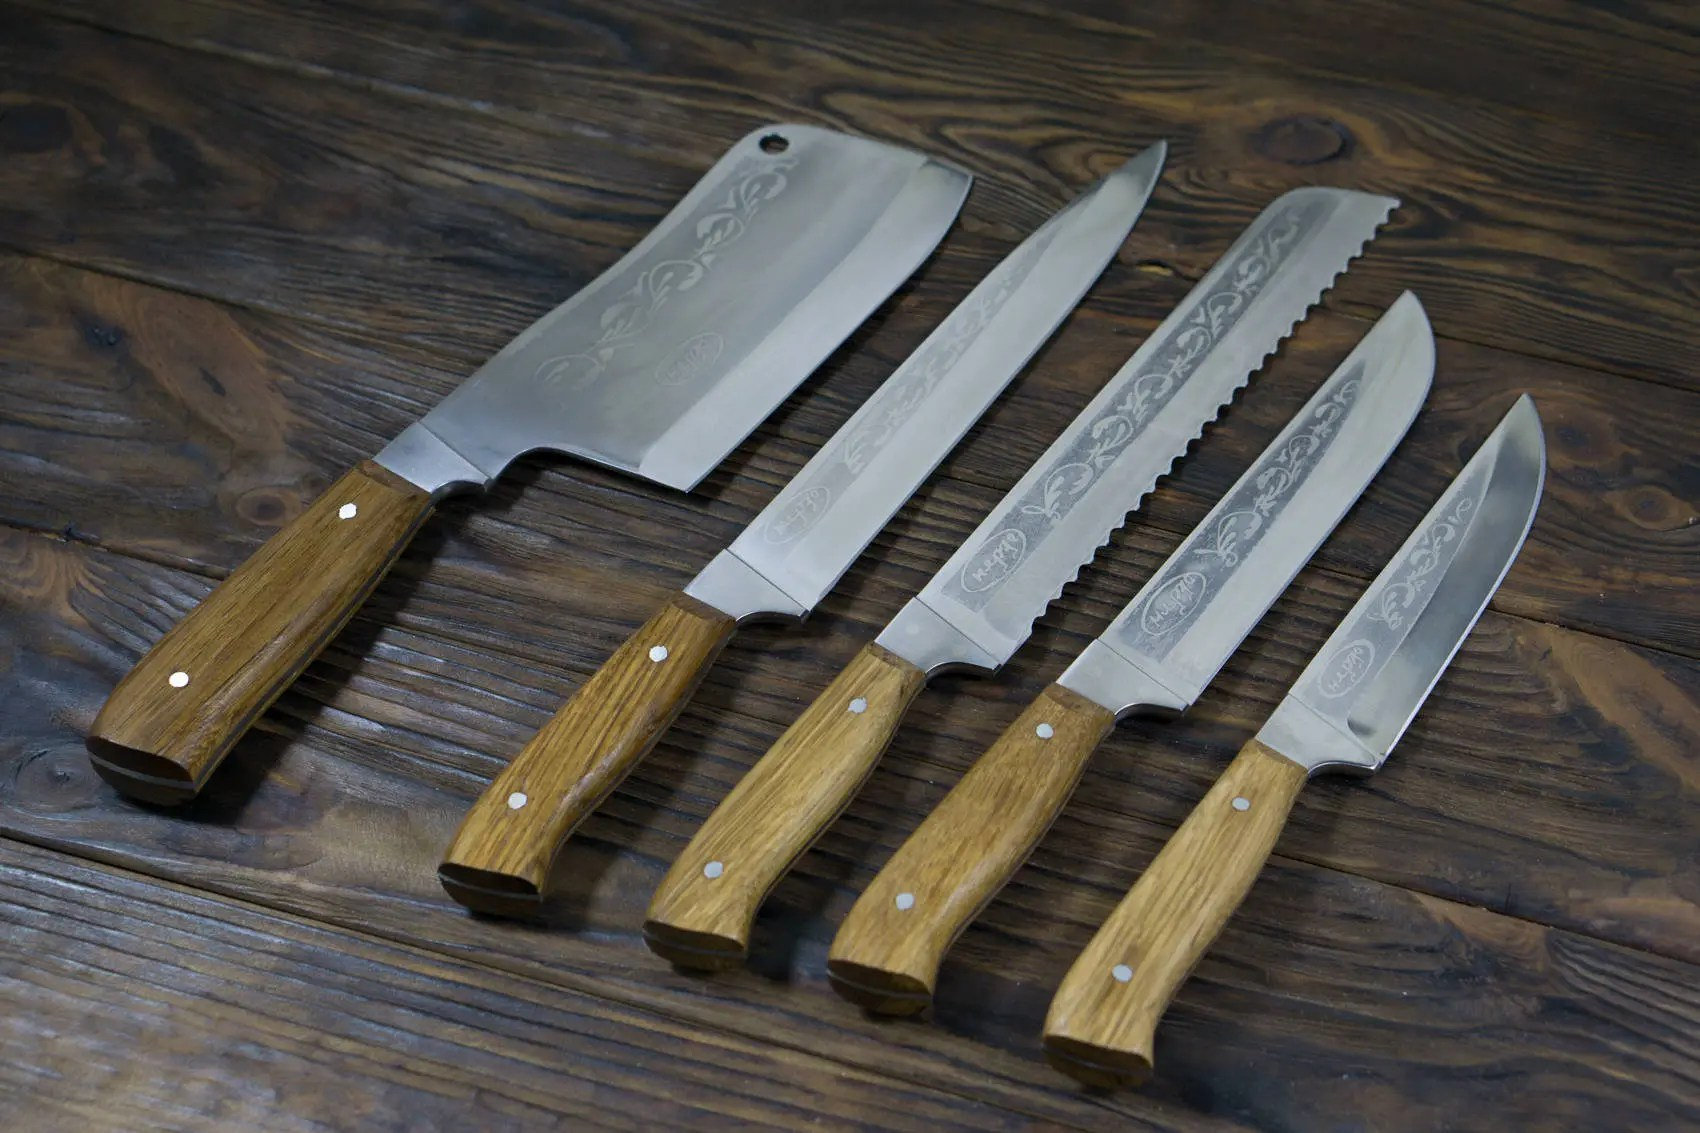 professional kitchen knives commercial door knife set engraved chef etsy image 0